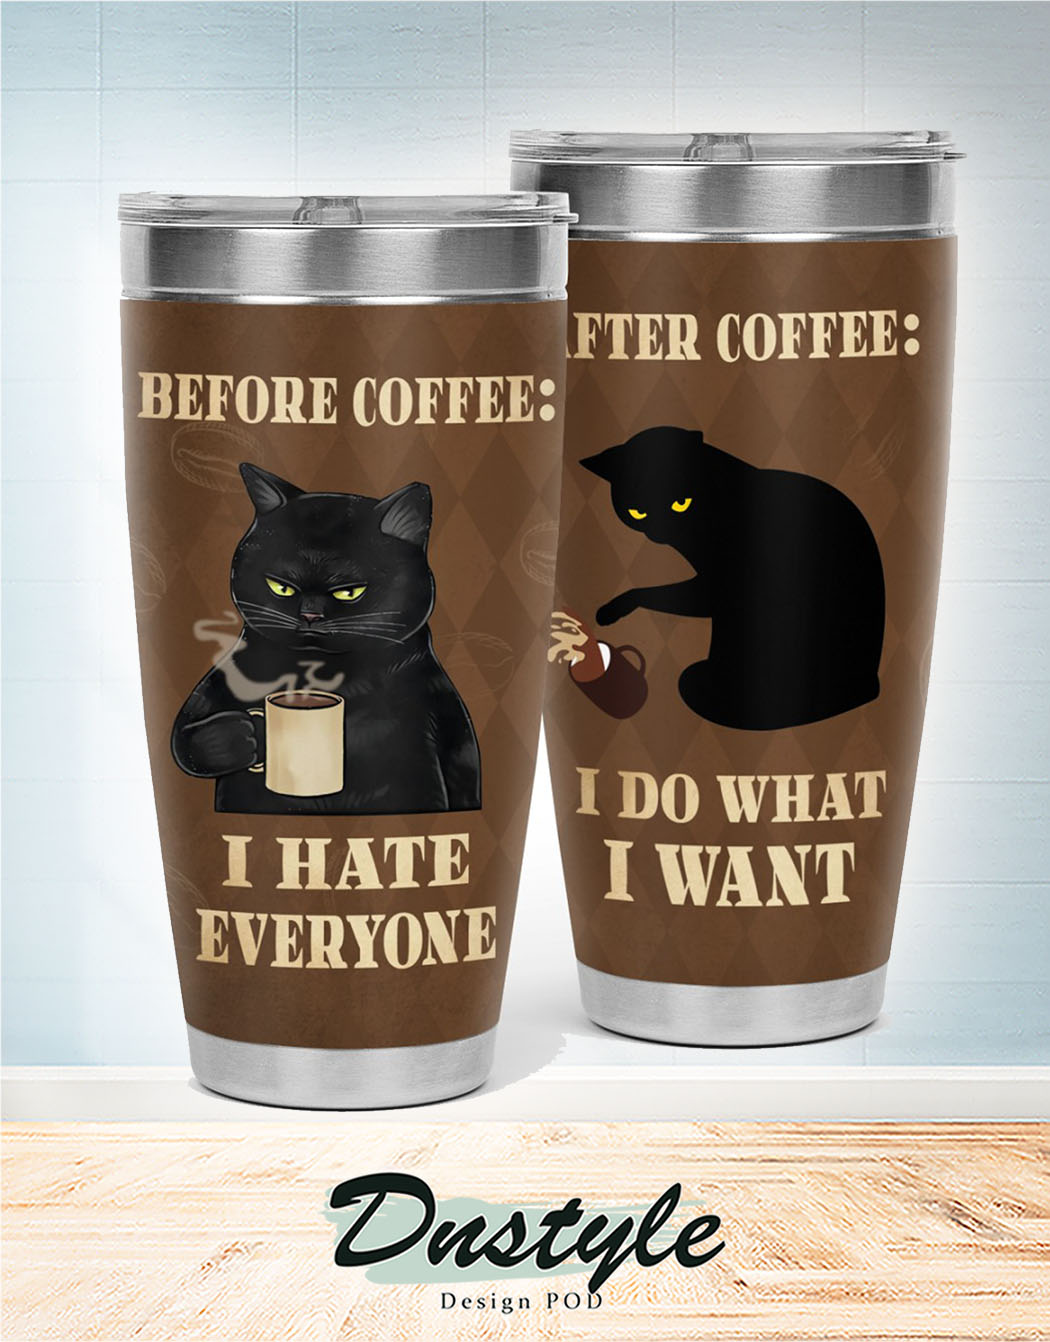 Cat before coffee I hate everyone after coffee I do what I want tumbler